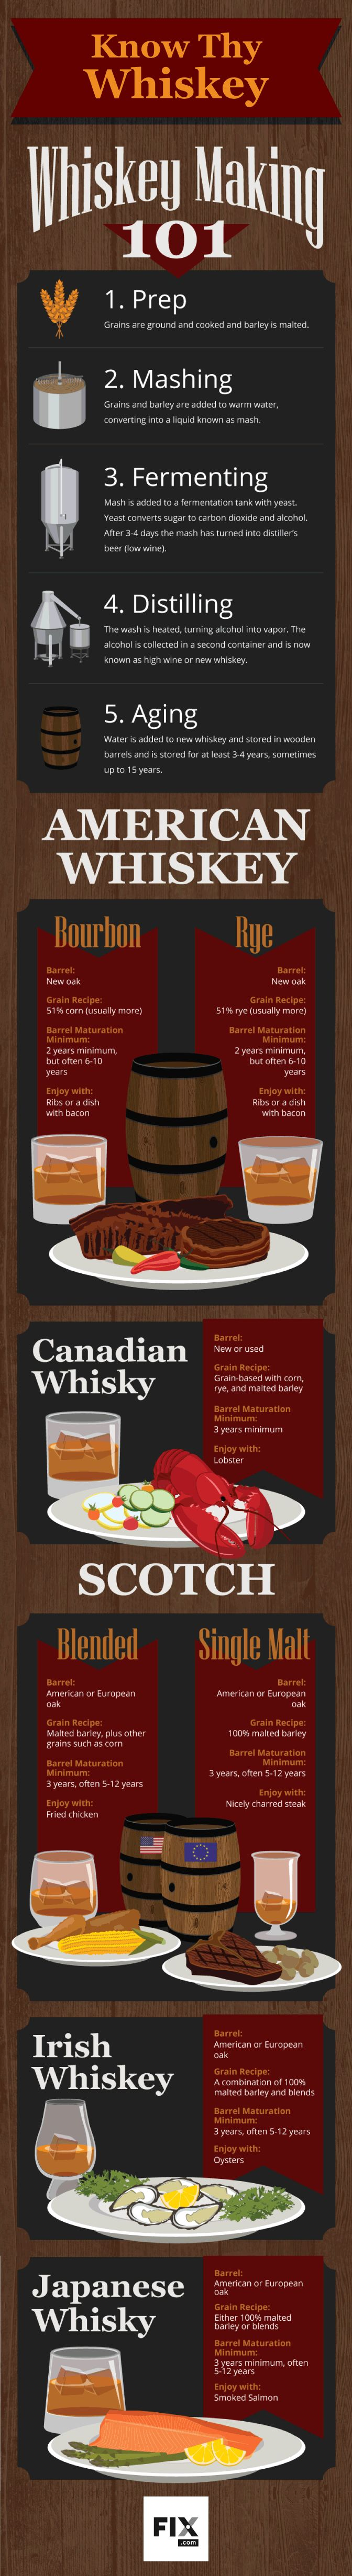 Rye, scotch, Irish whiskey, what's the difference? Although these beverages all fall under the whiskey umbrella, learn how recipe variations from around the world give each a unique and incredible flavor!